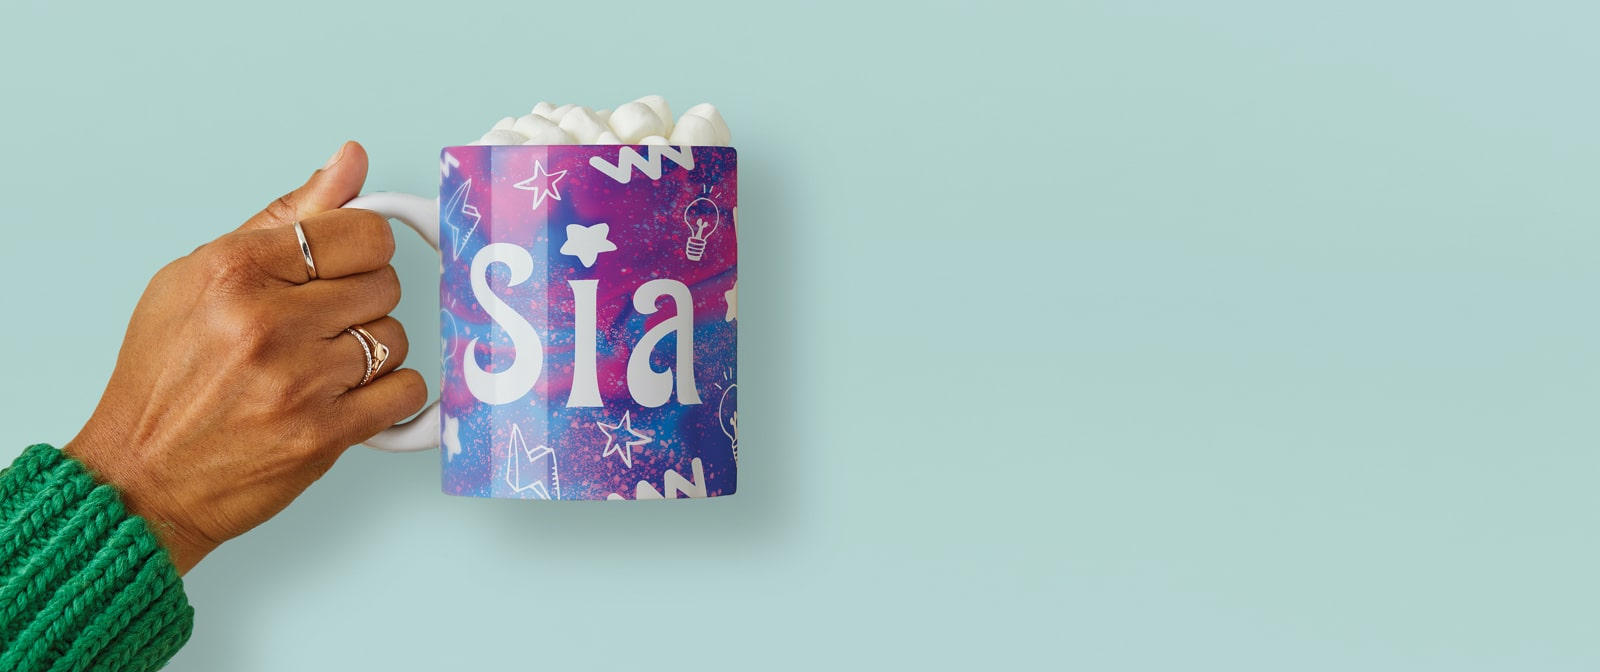 Hand holding a mug with the name Sia on it.